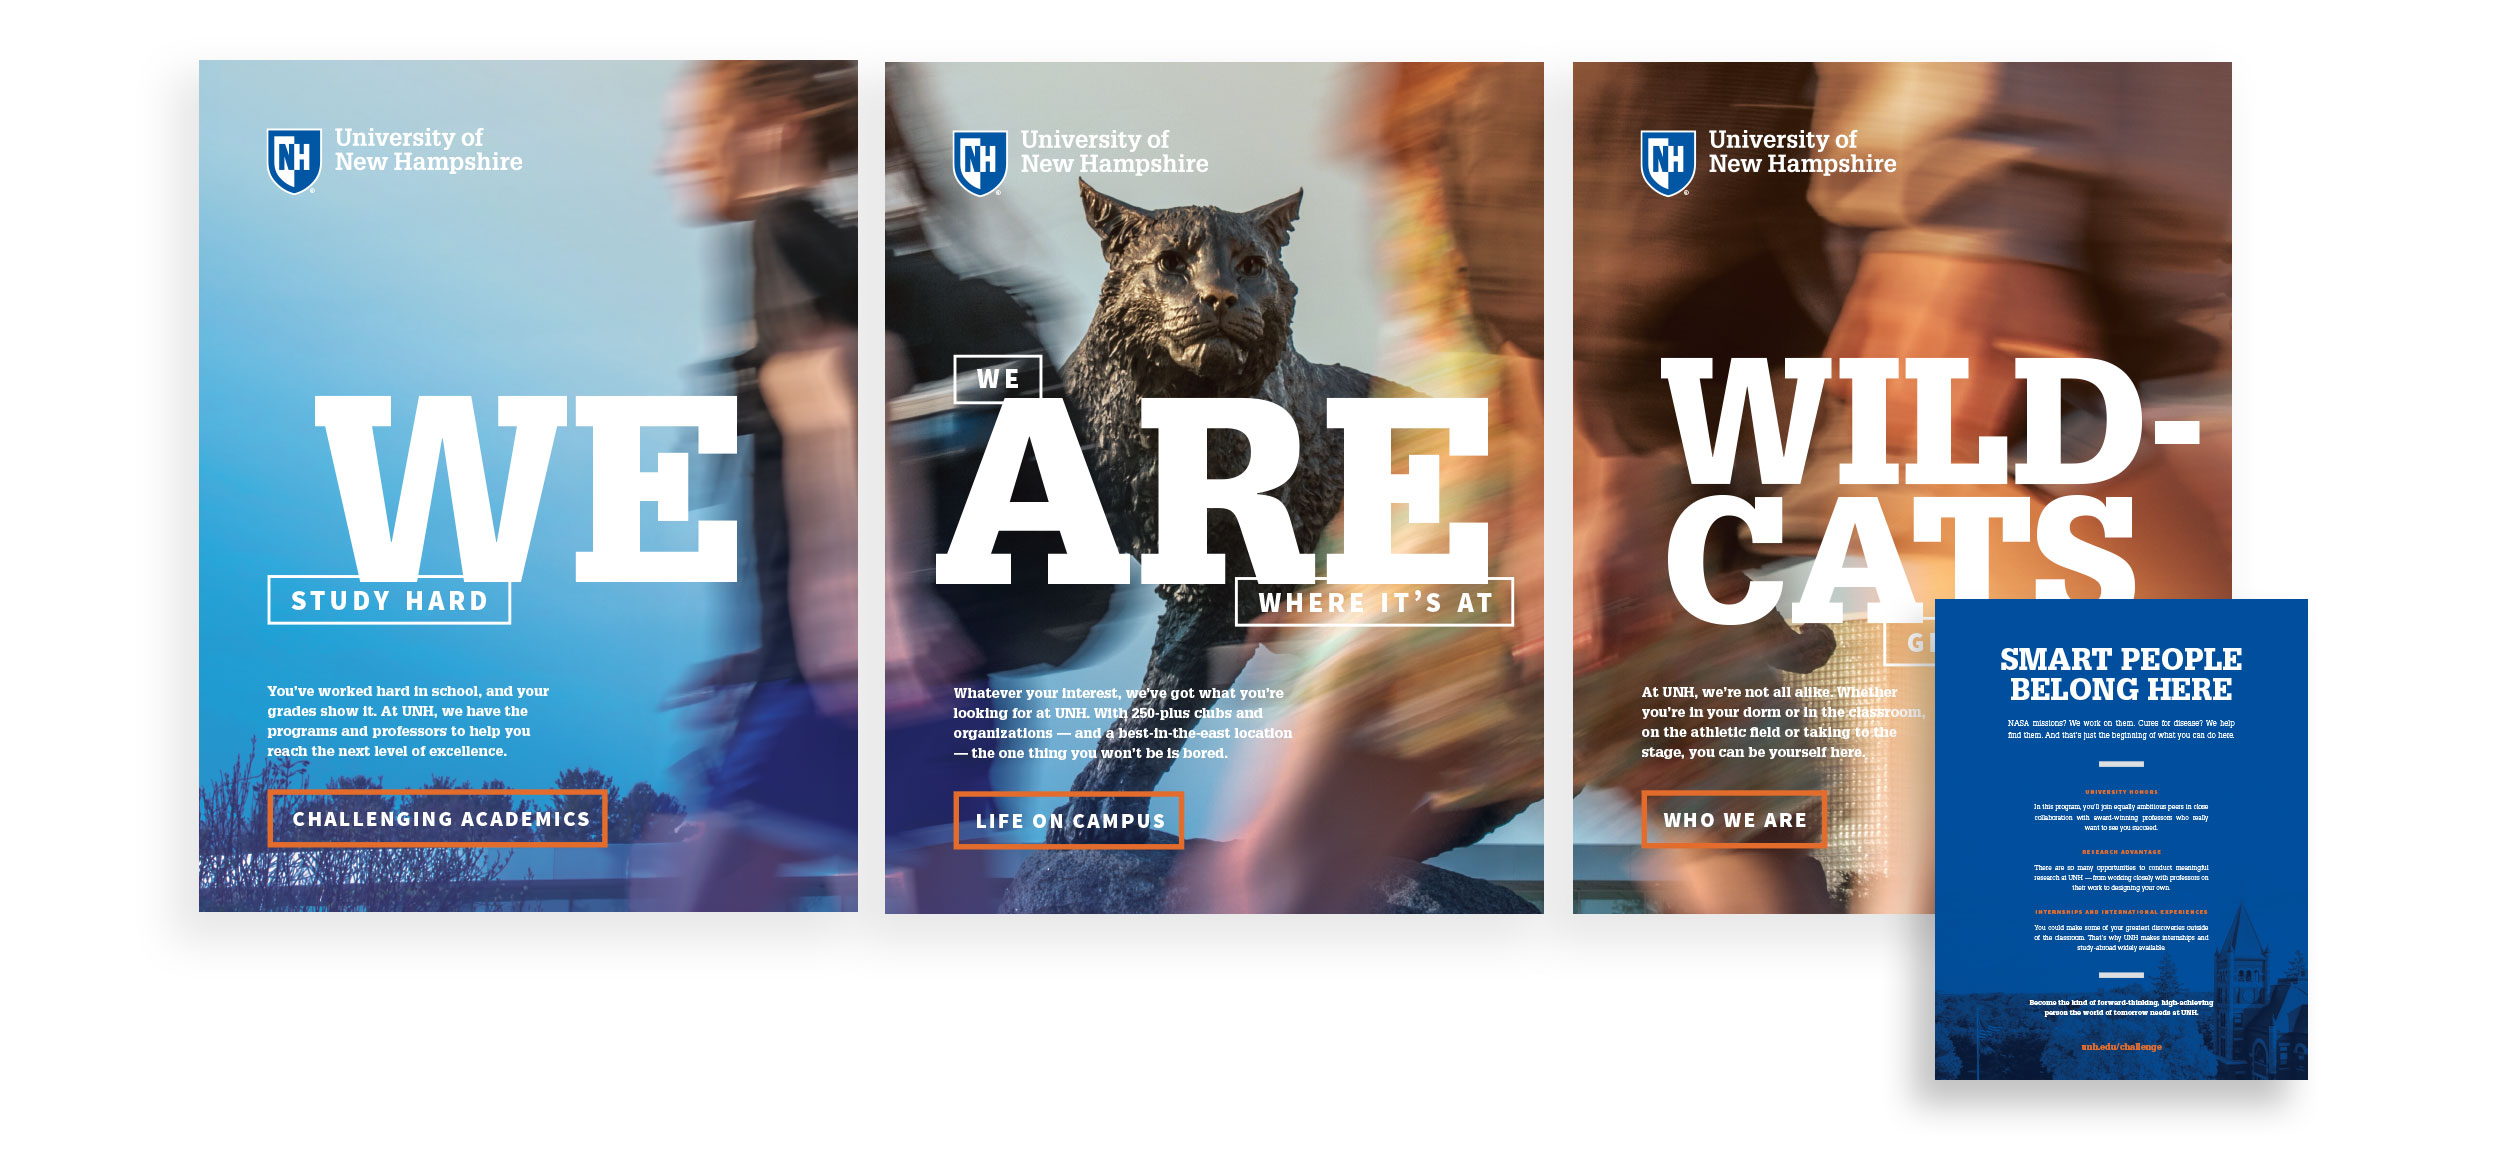 UNH Student Recruitment Work - We Are Wildcats Admissions Lobby Print Collateral - Loren Marple